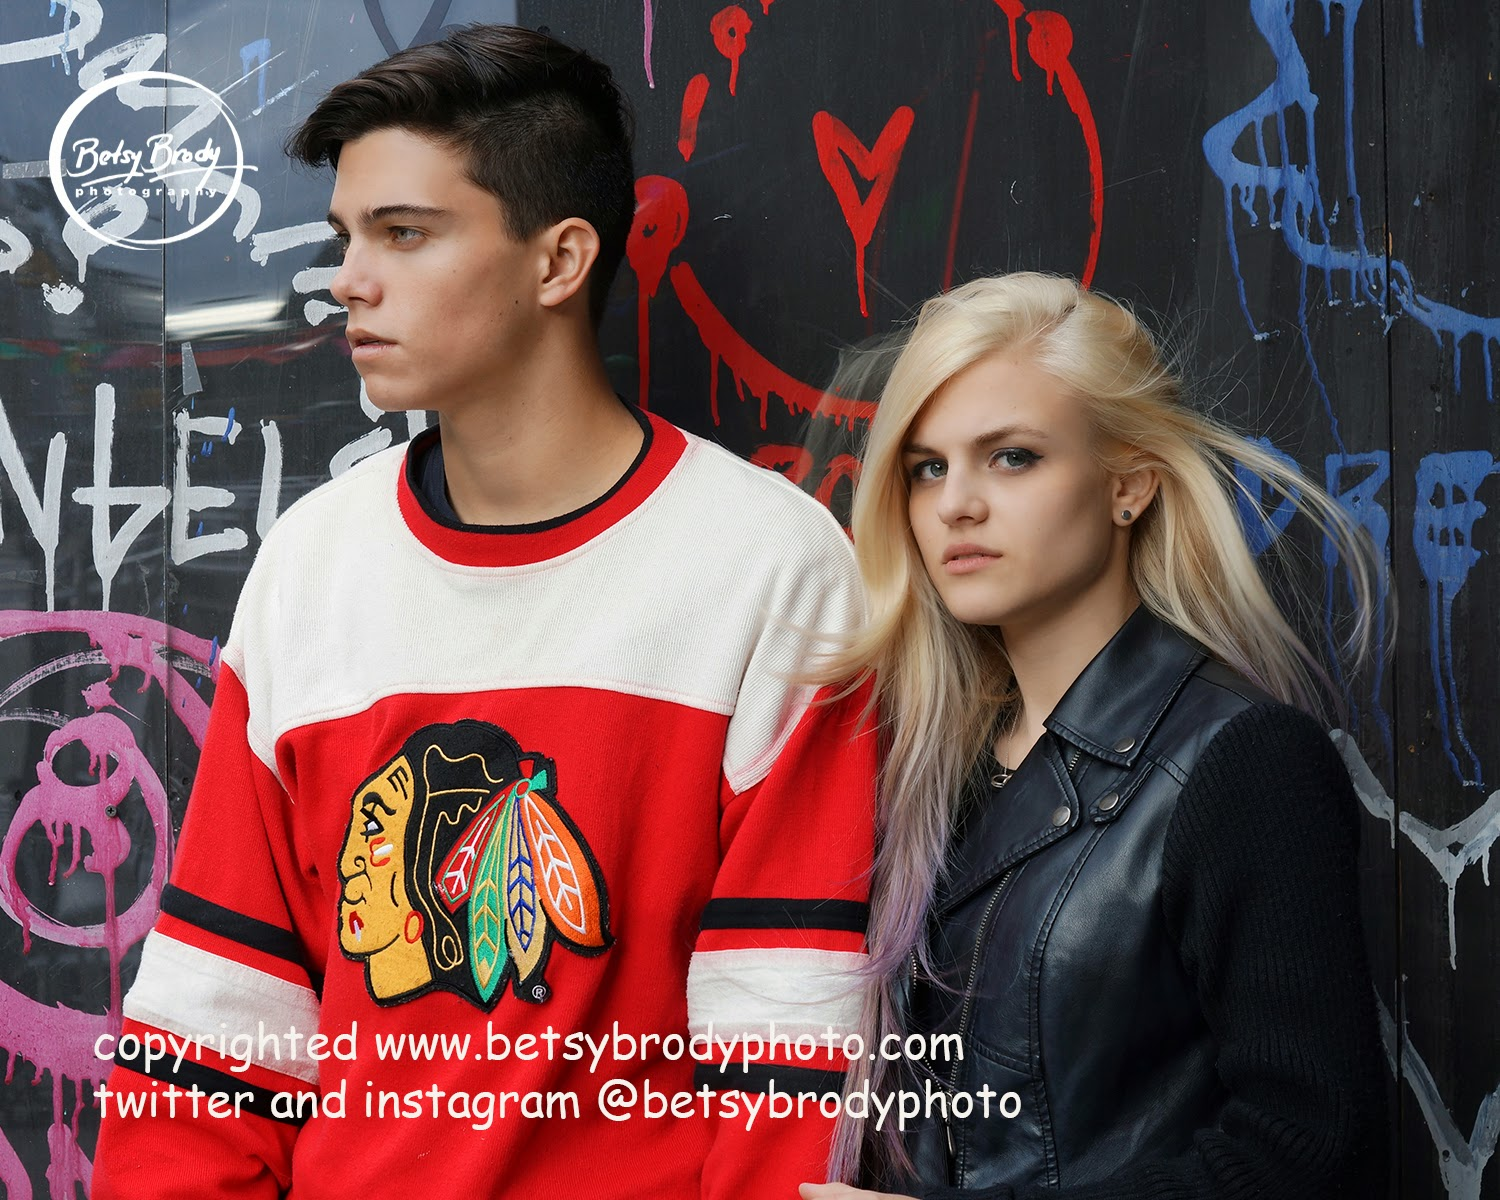 Betsy Brody Photography 2014